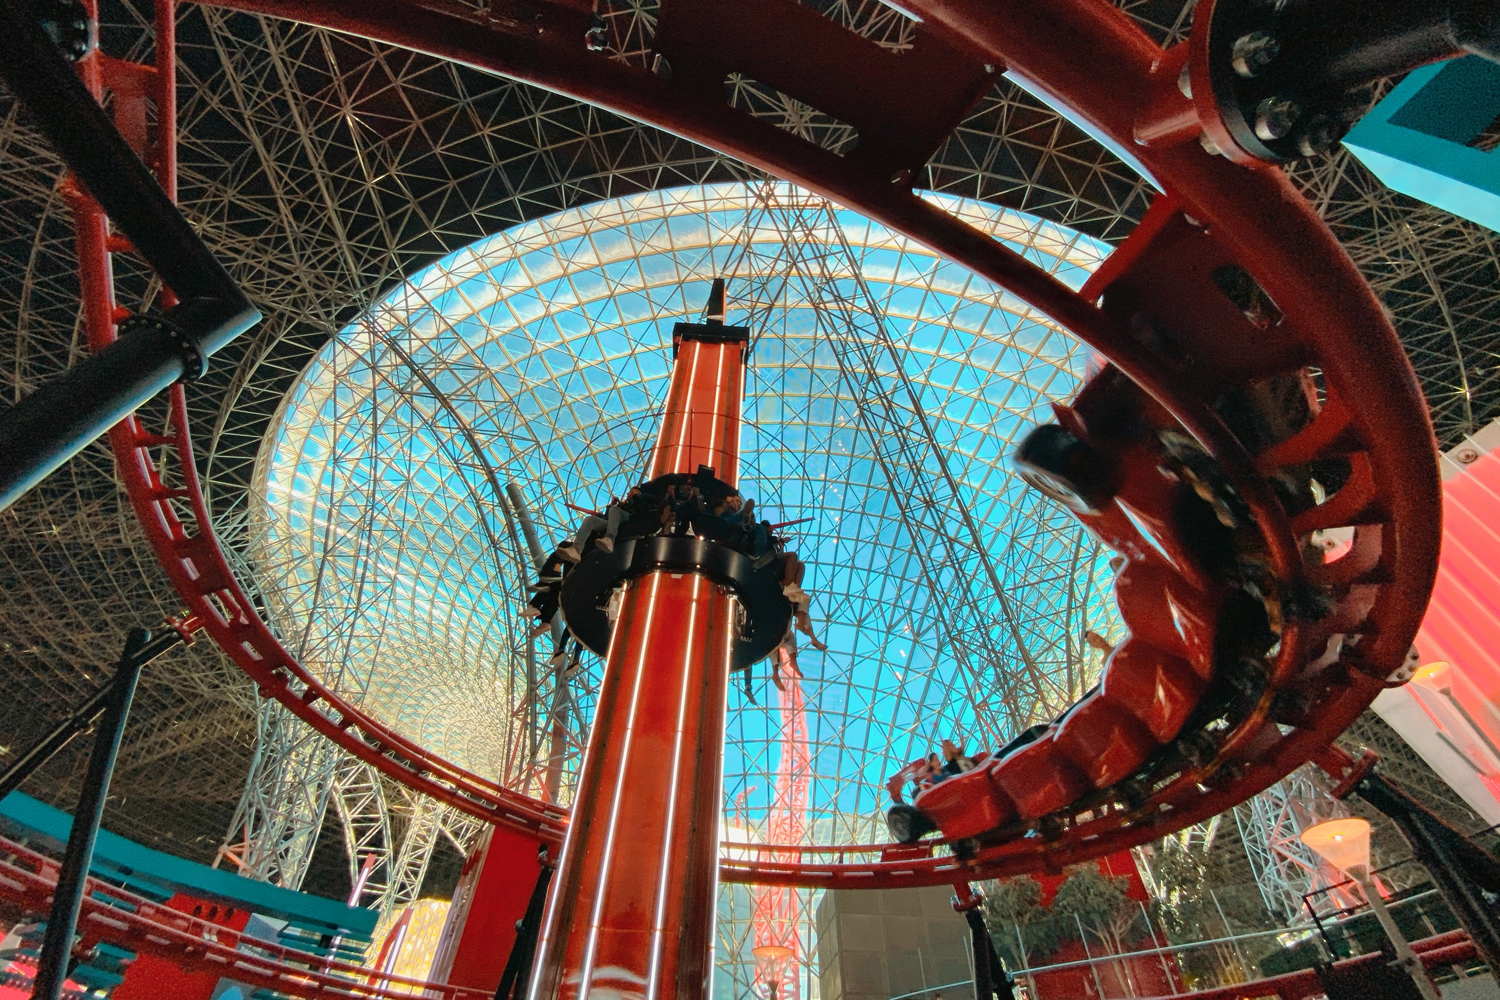 Ferrari World Abu Dhabi's Family Zone to open at the start of March